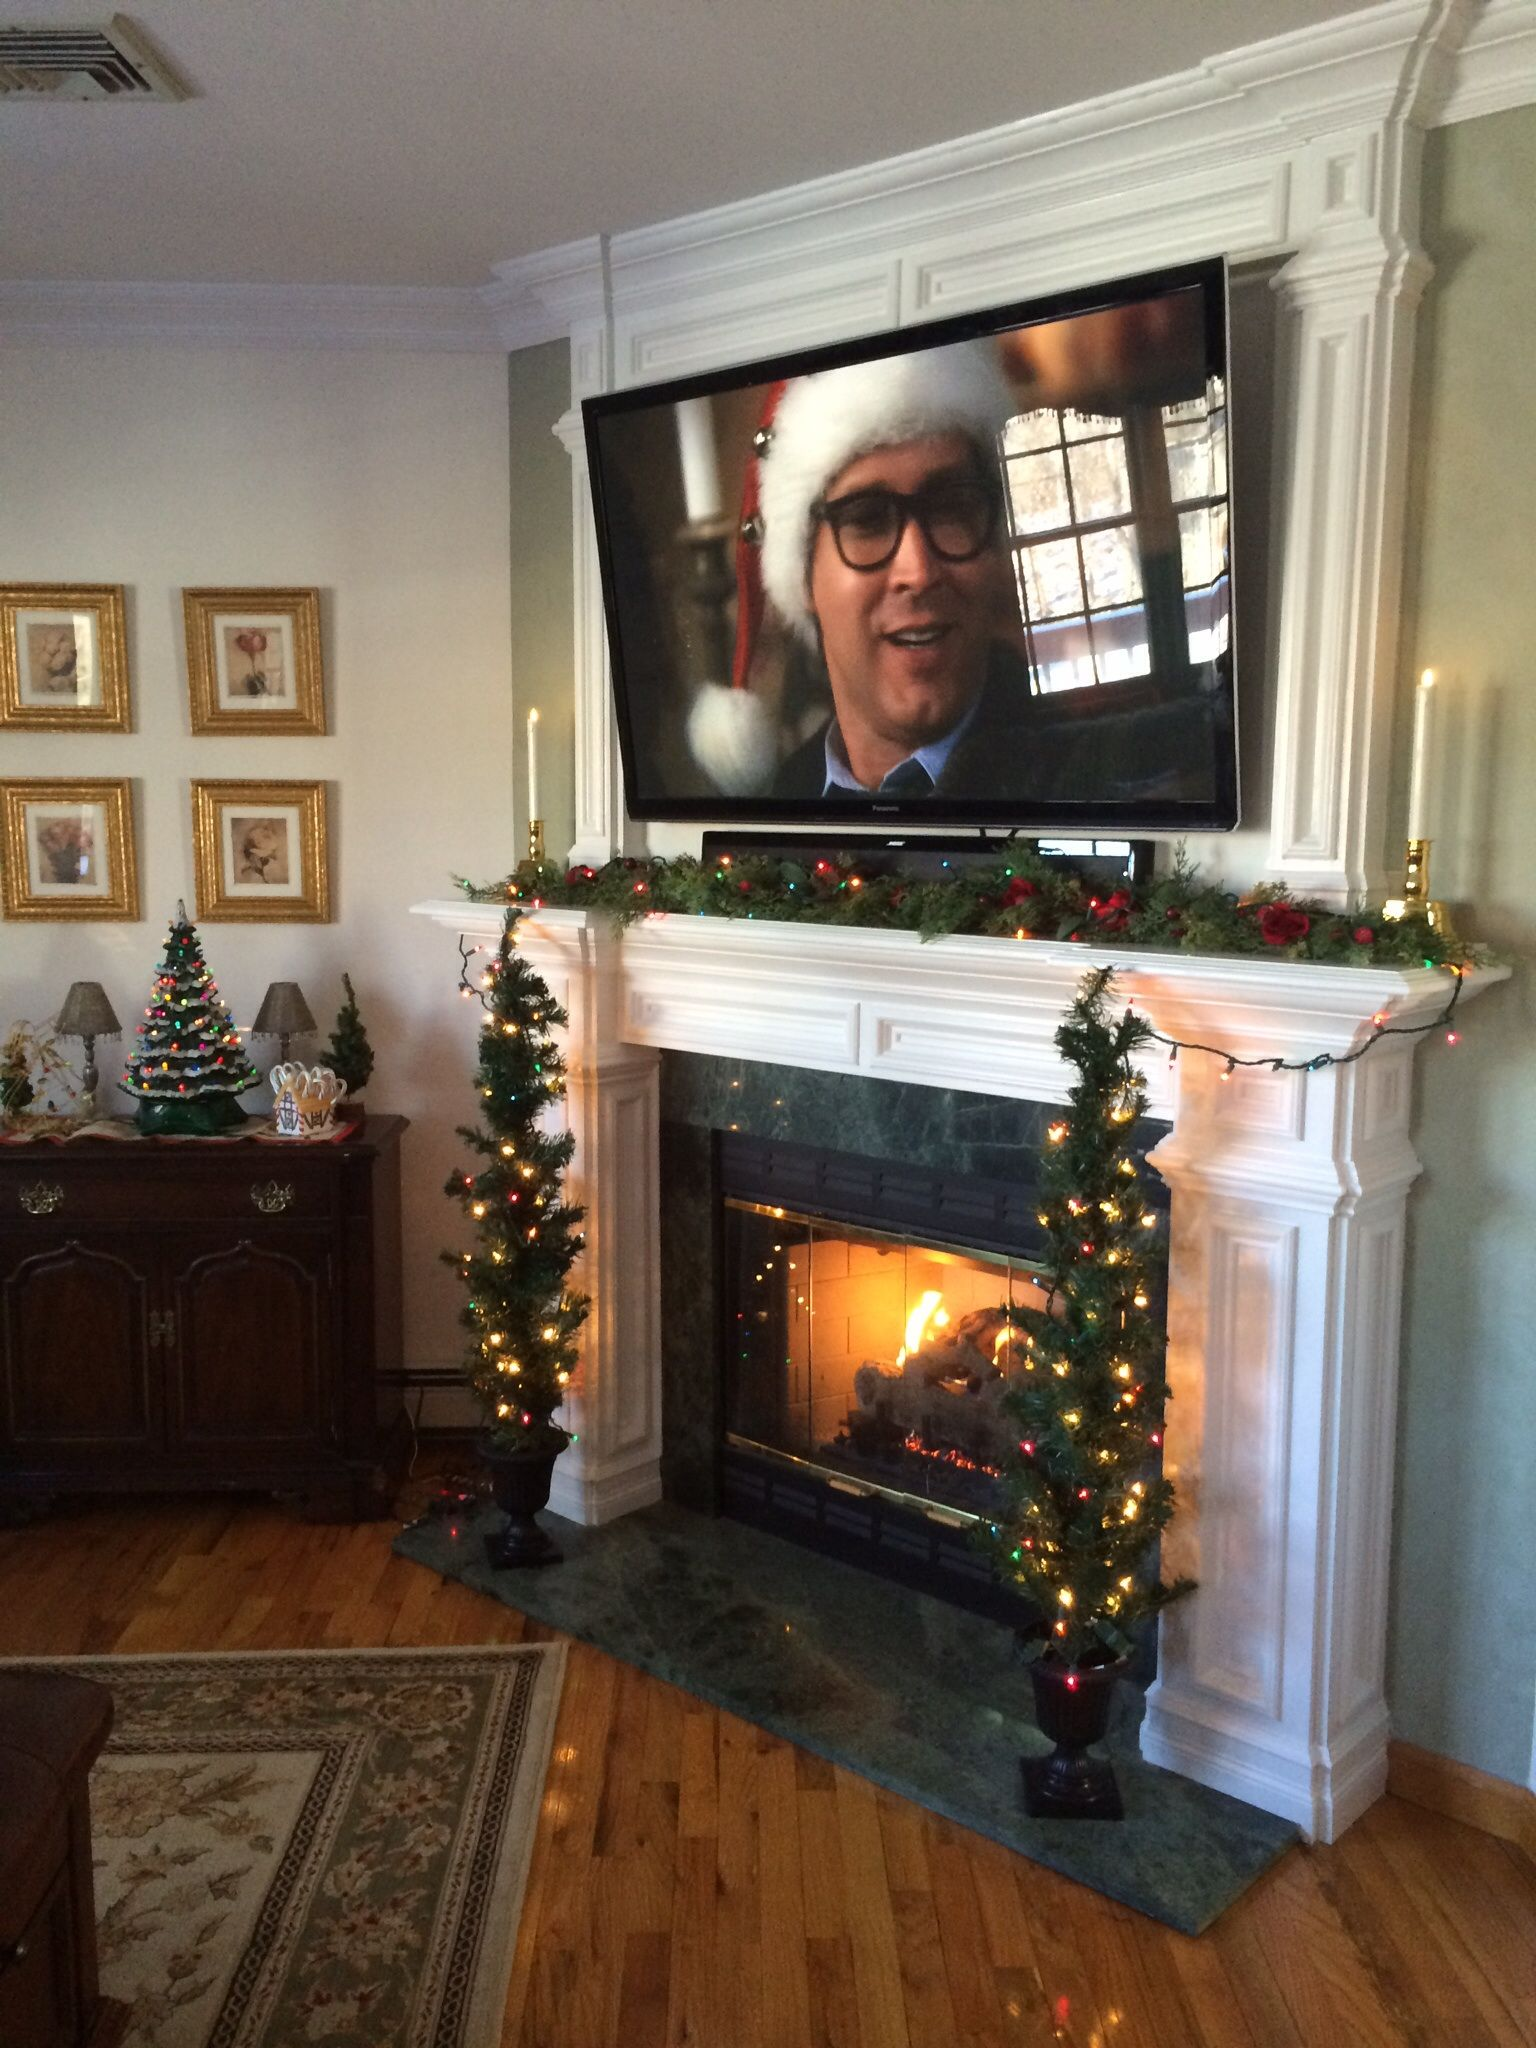 TV above fireplace...there is hope for some decoration